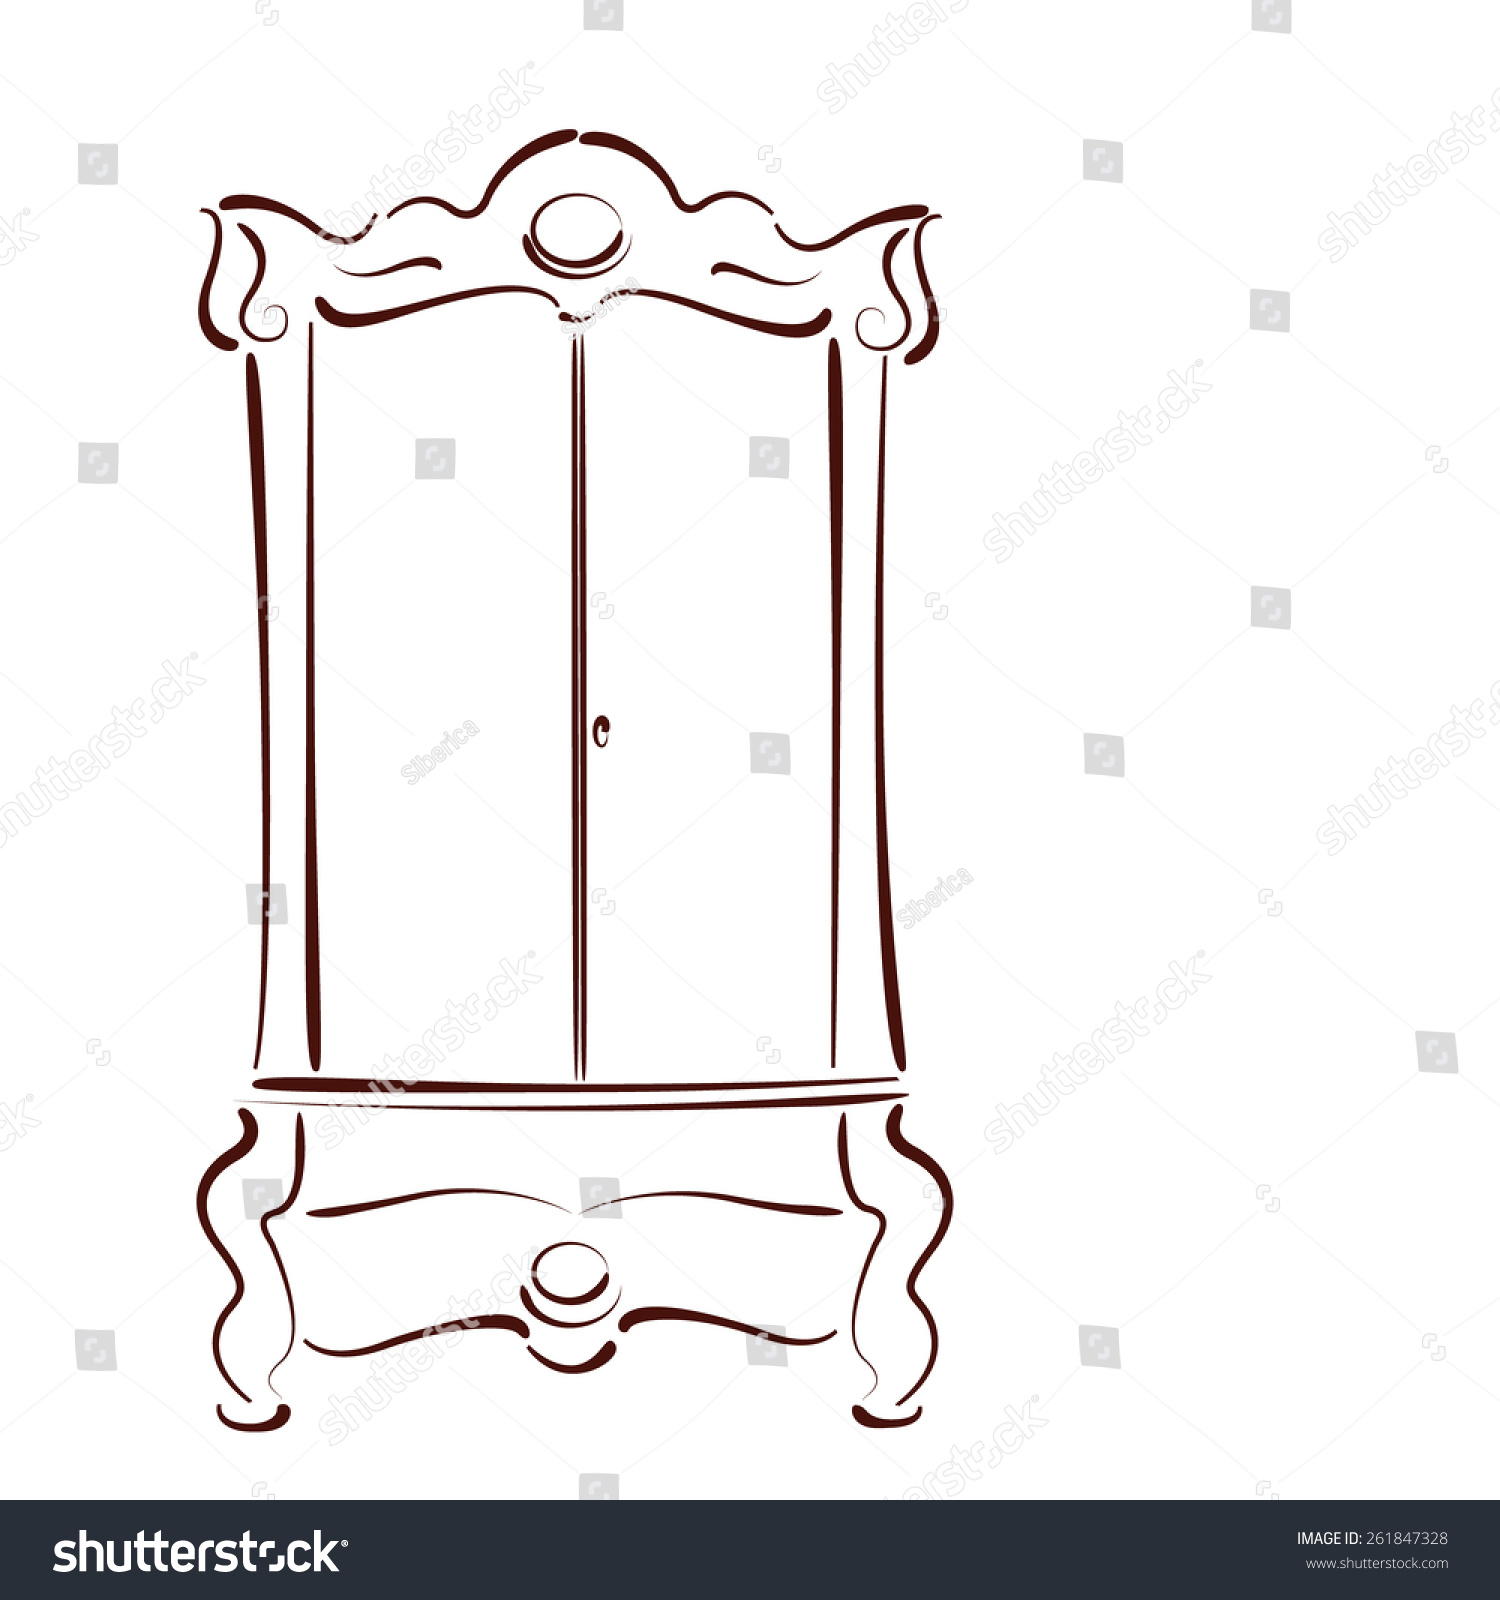 wardrobe template. sketched vintage wardrobe isolated on white background design template for label banner postcard